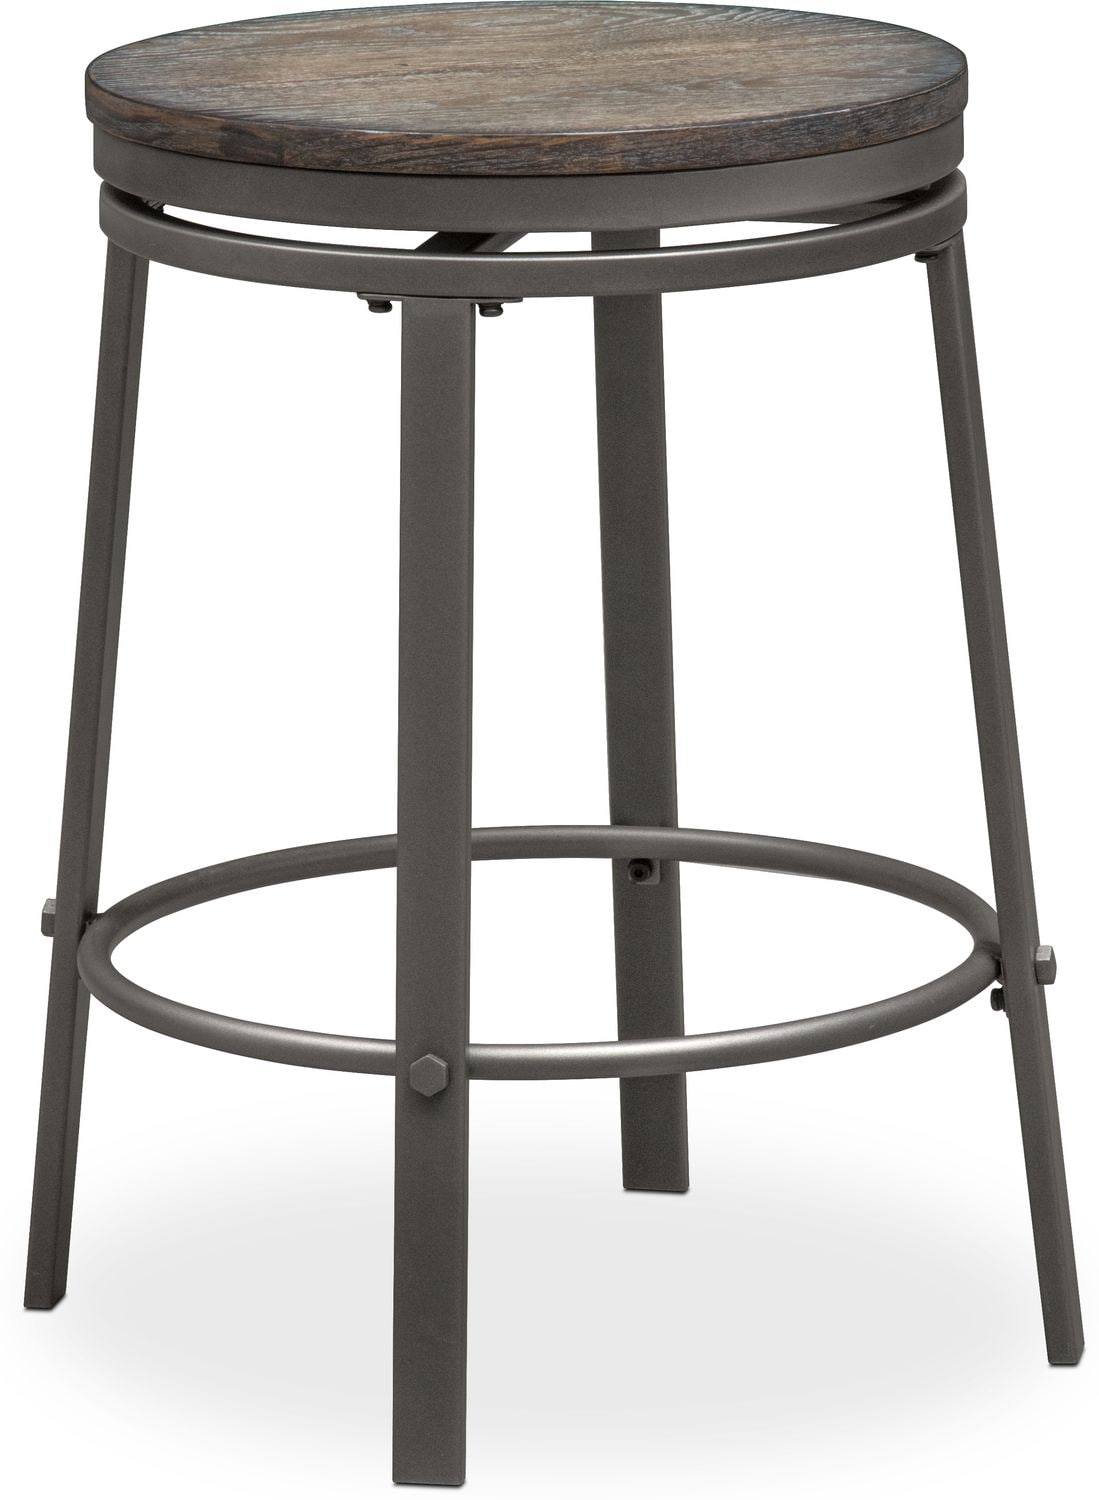 Stratton Counter Height Stool   Ash